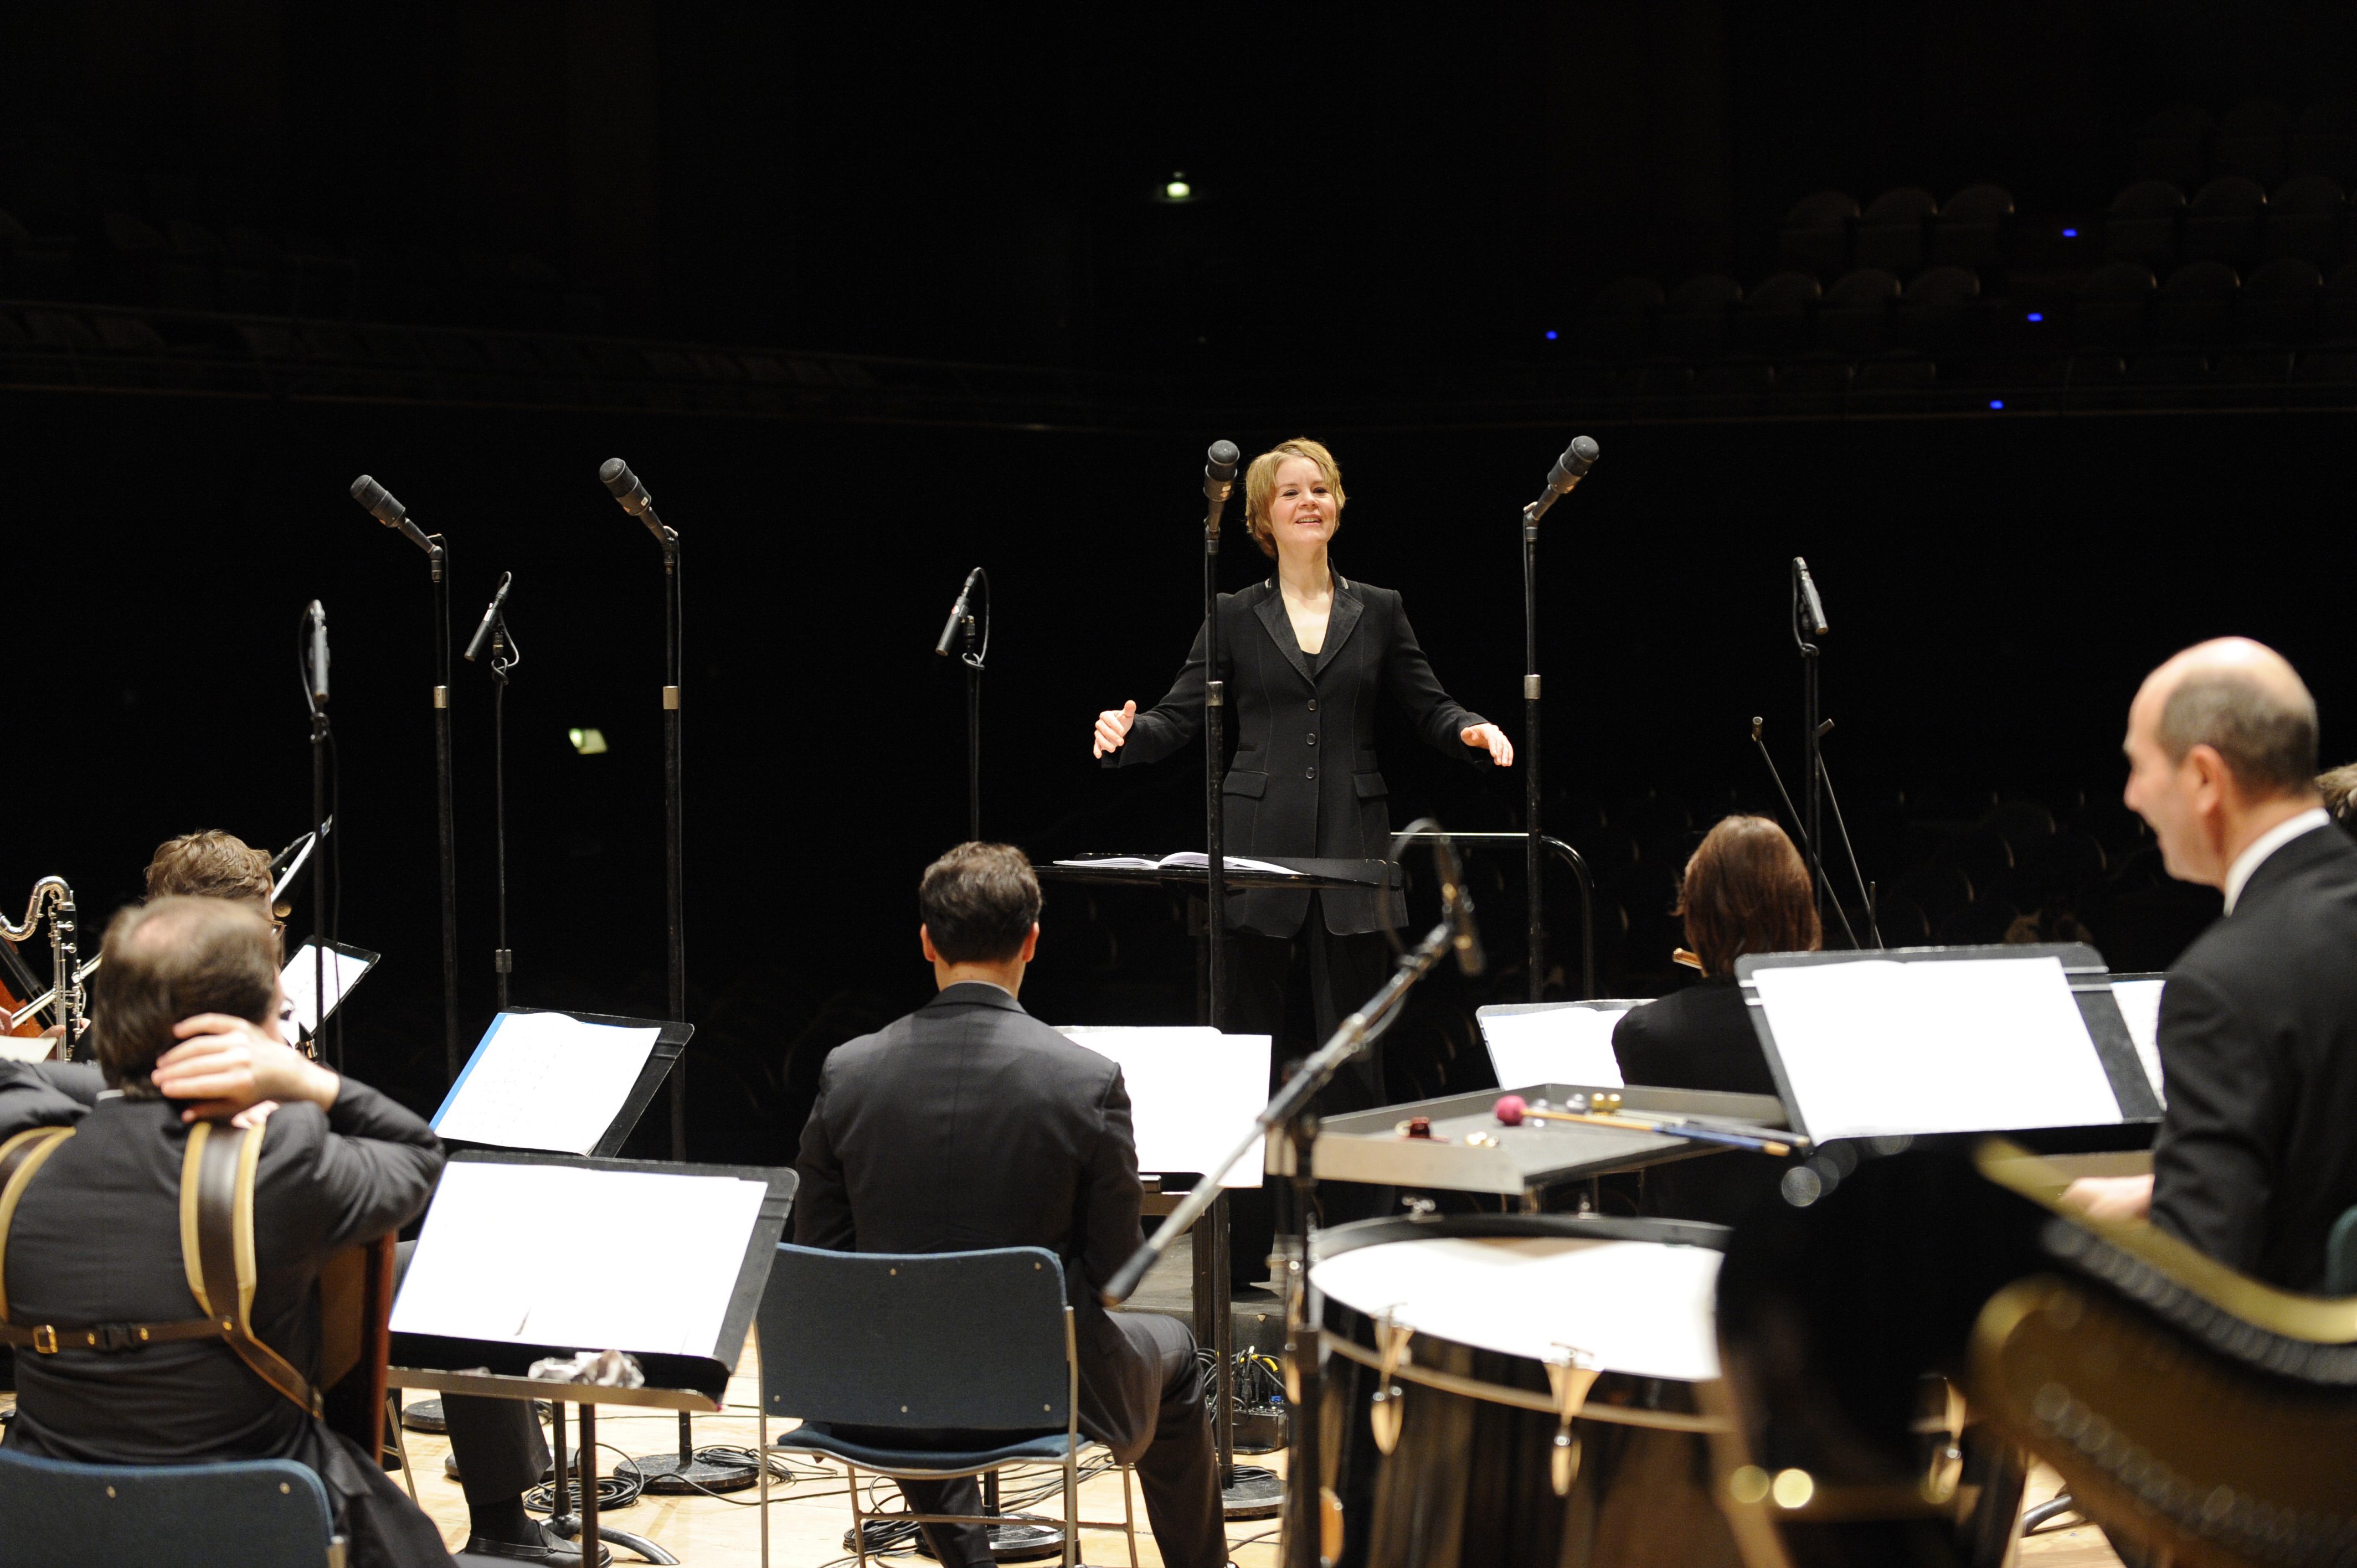 Susanna Malkki conducts the Ensemble Intercontempo